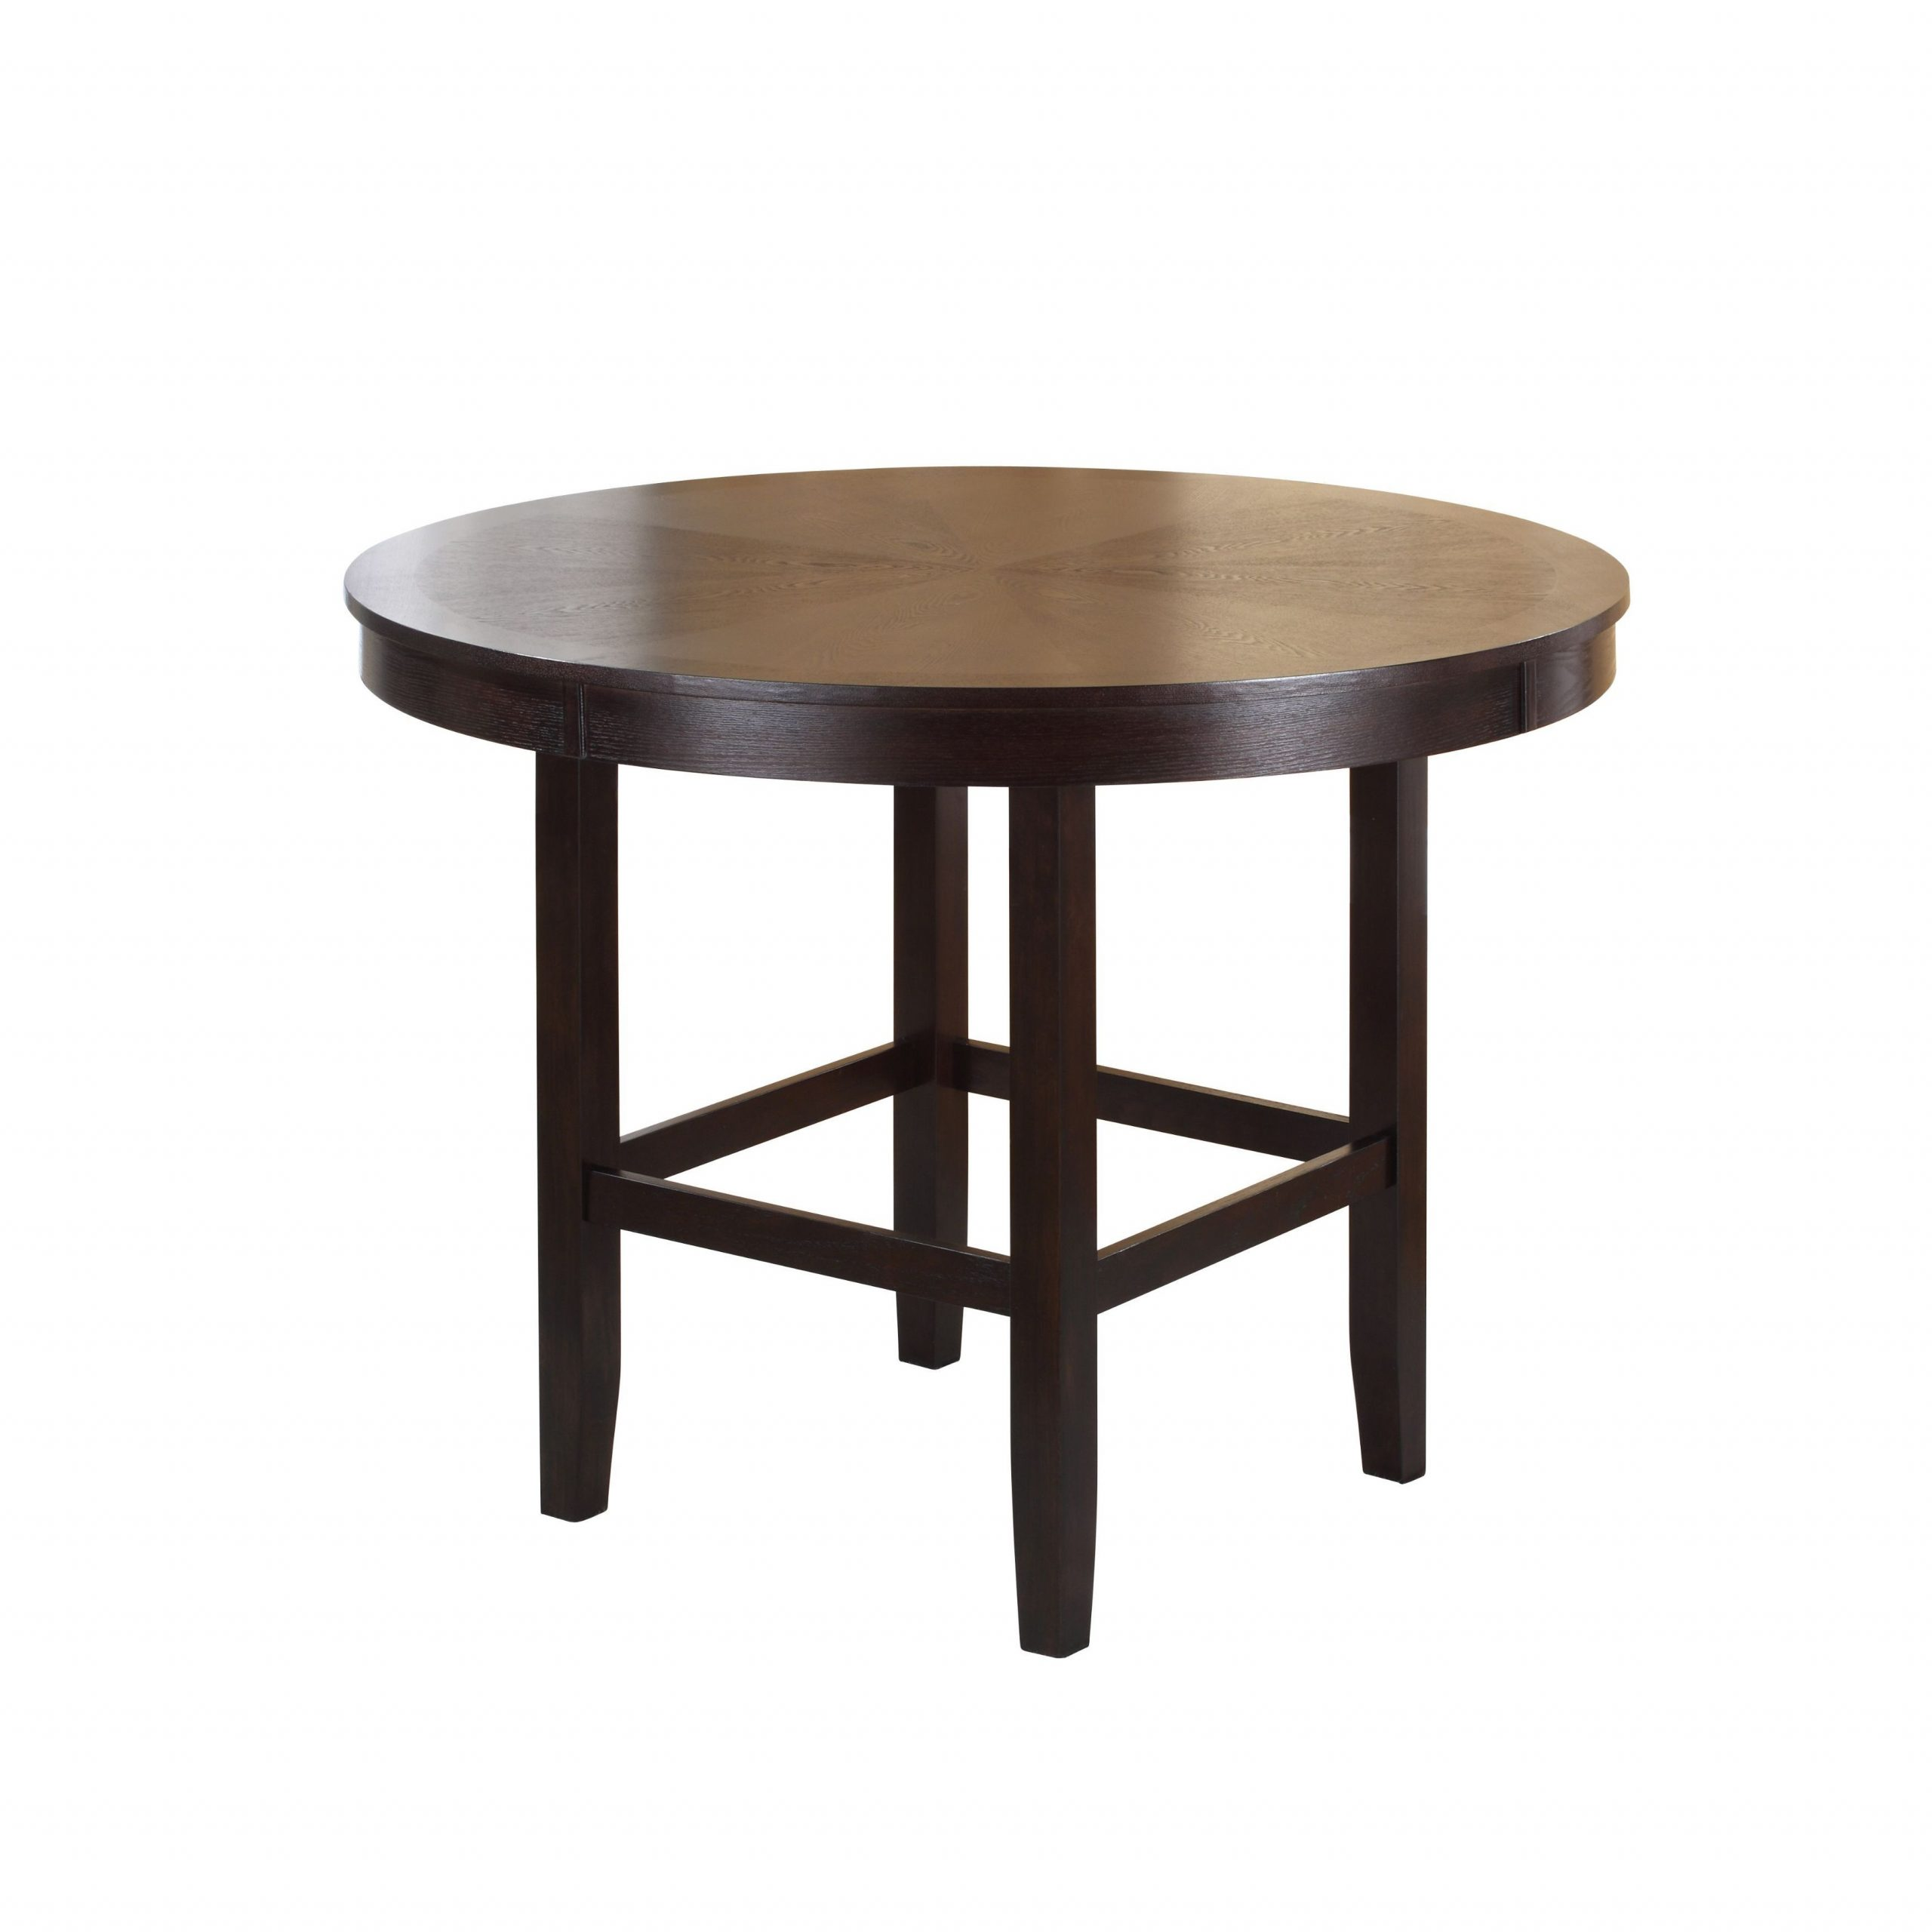 48 inch round pedestal dining table with leaf